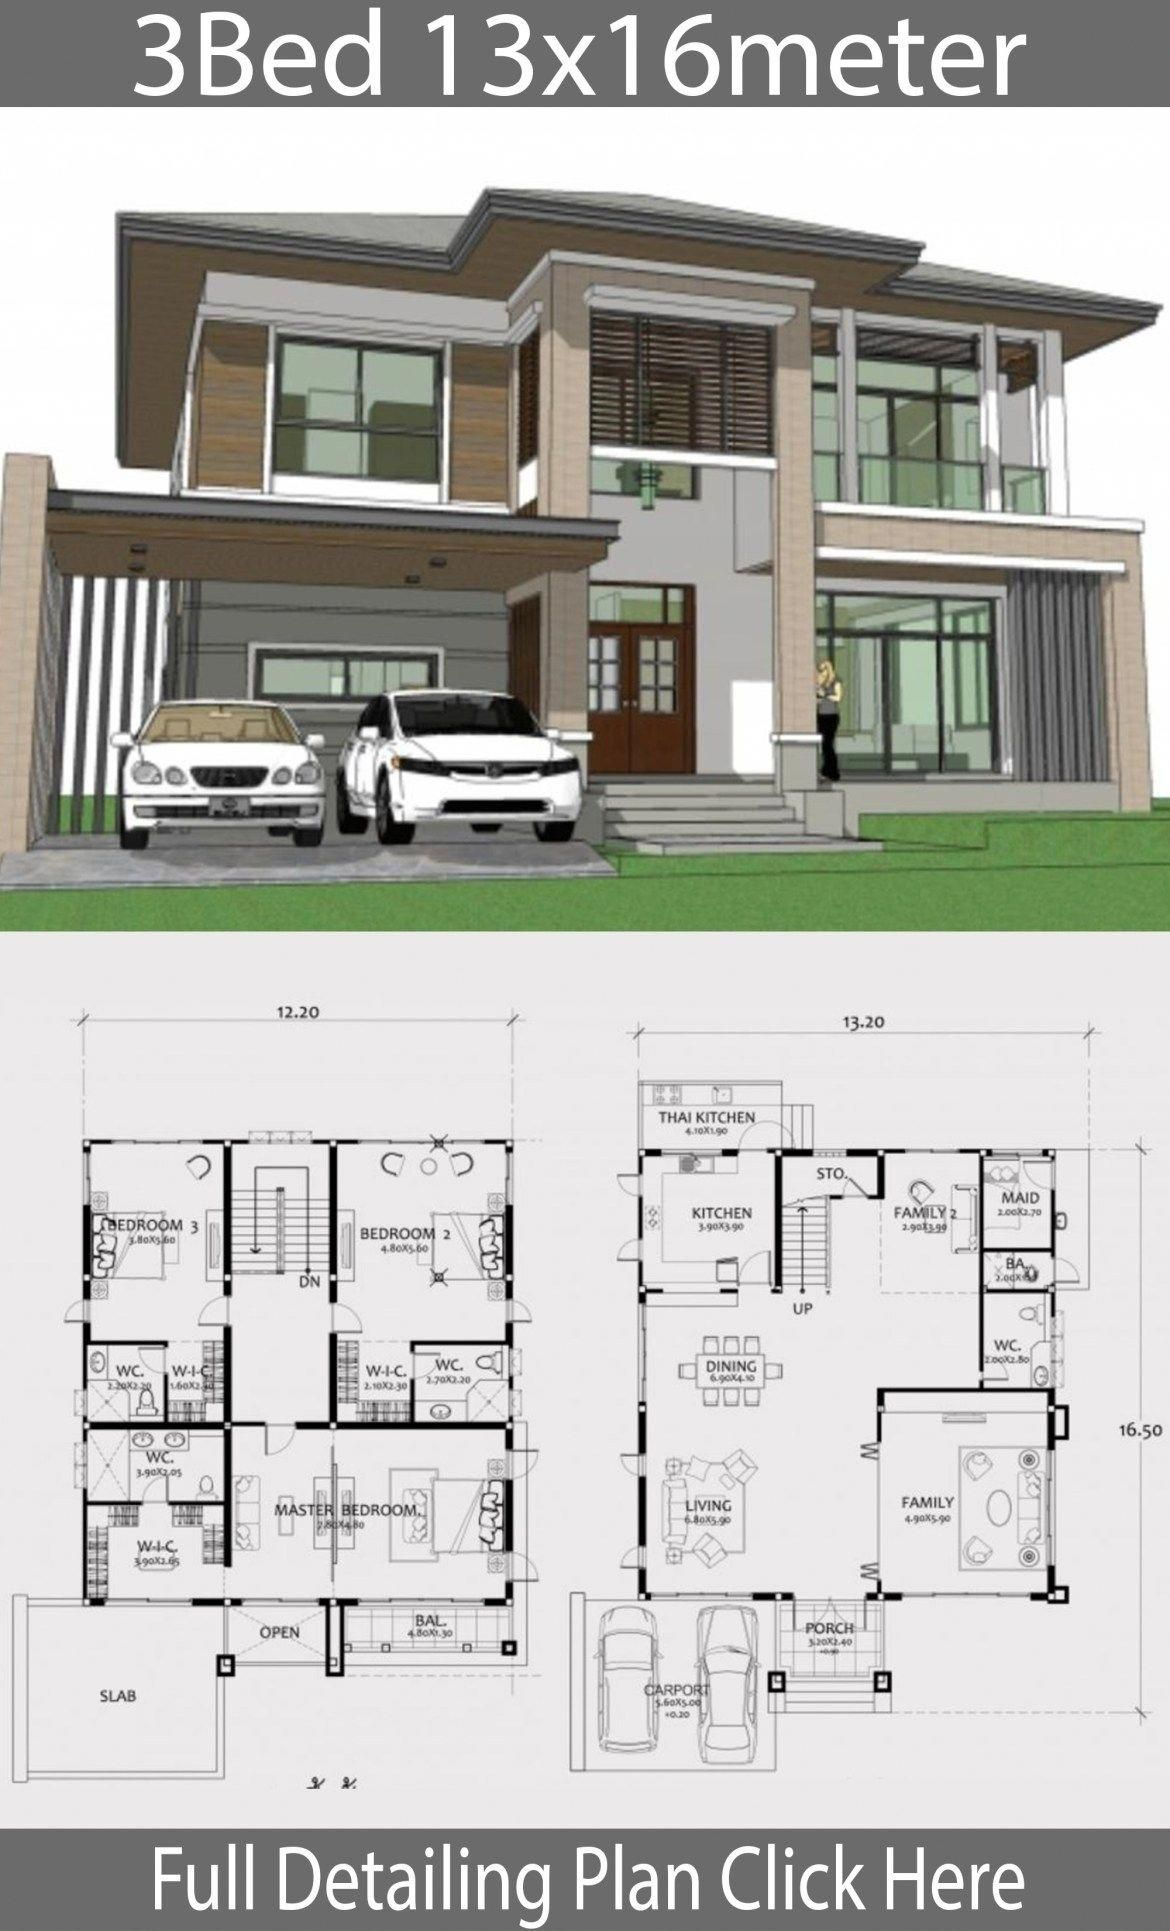 Home Design Plan 13x16m With 3 Bedrooms Home Design With Plansearch Besthomeinteriors Architectural House Plans Model House Plan Cool House Designs